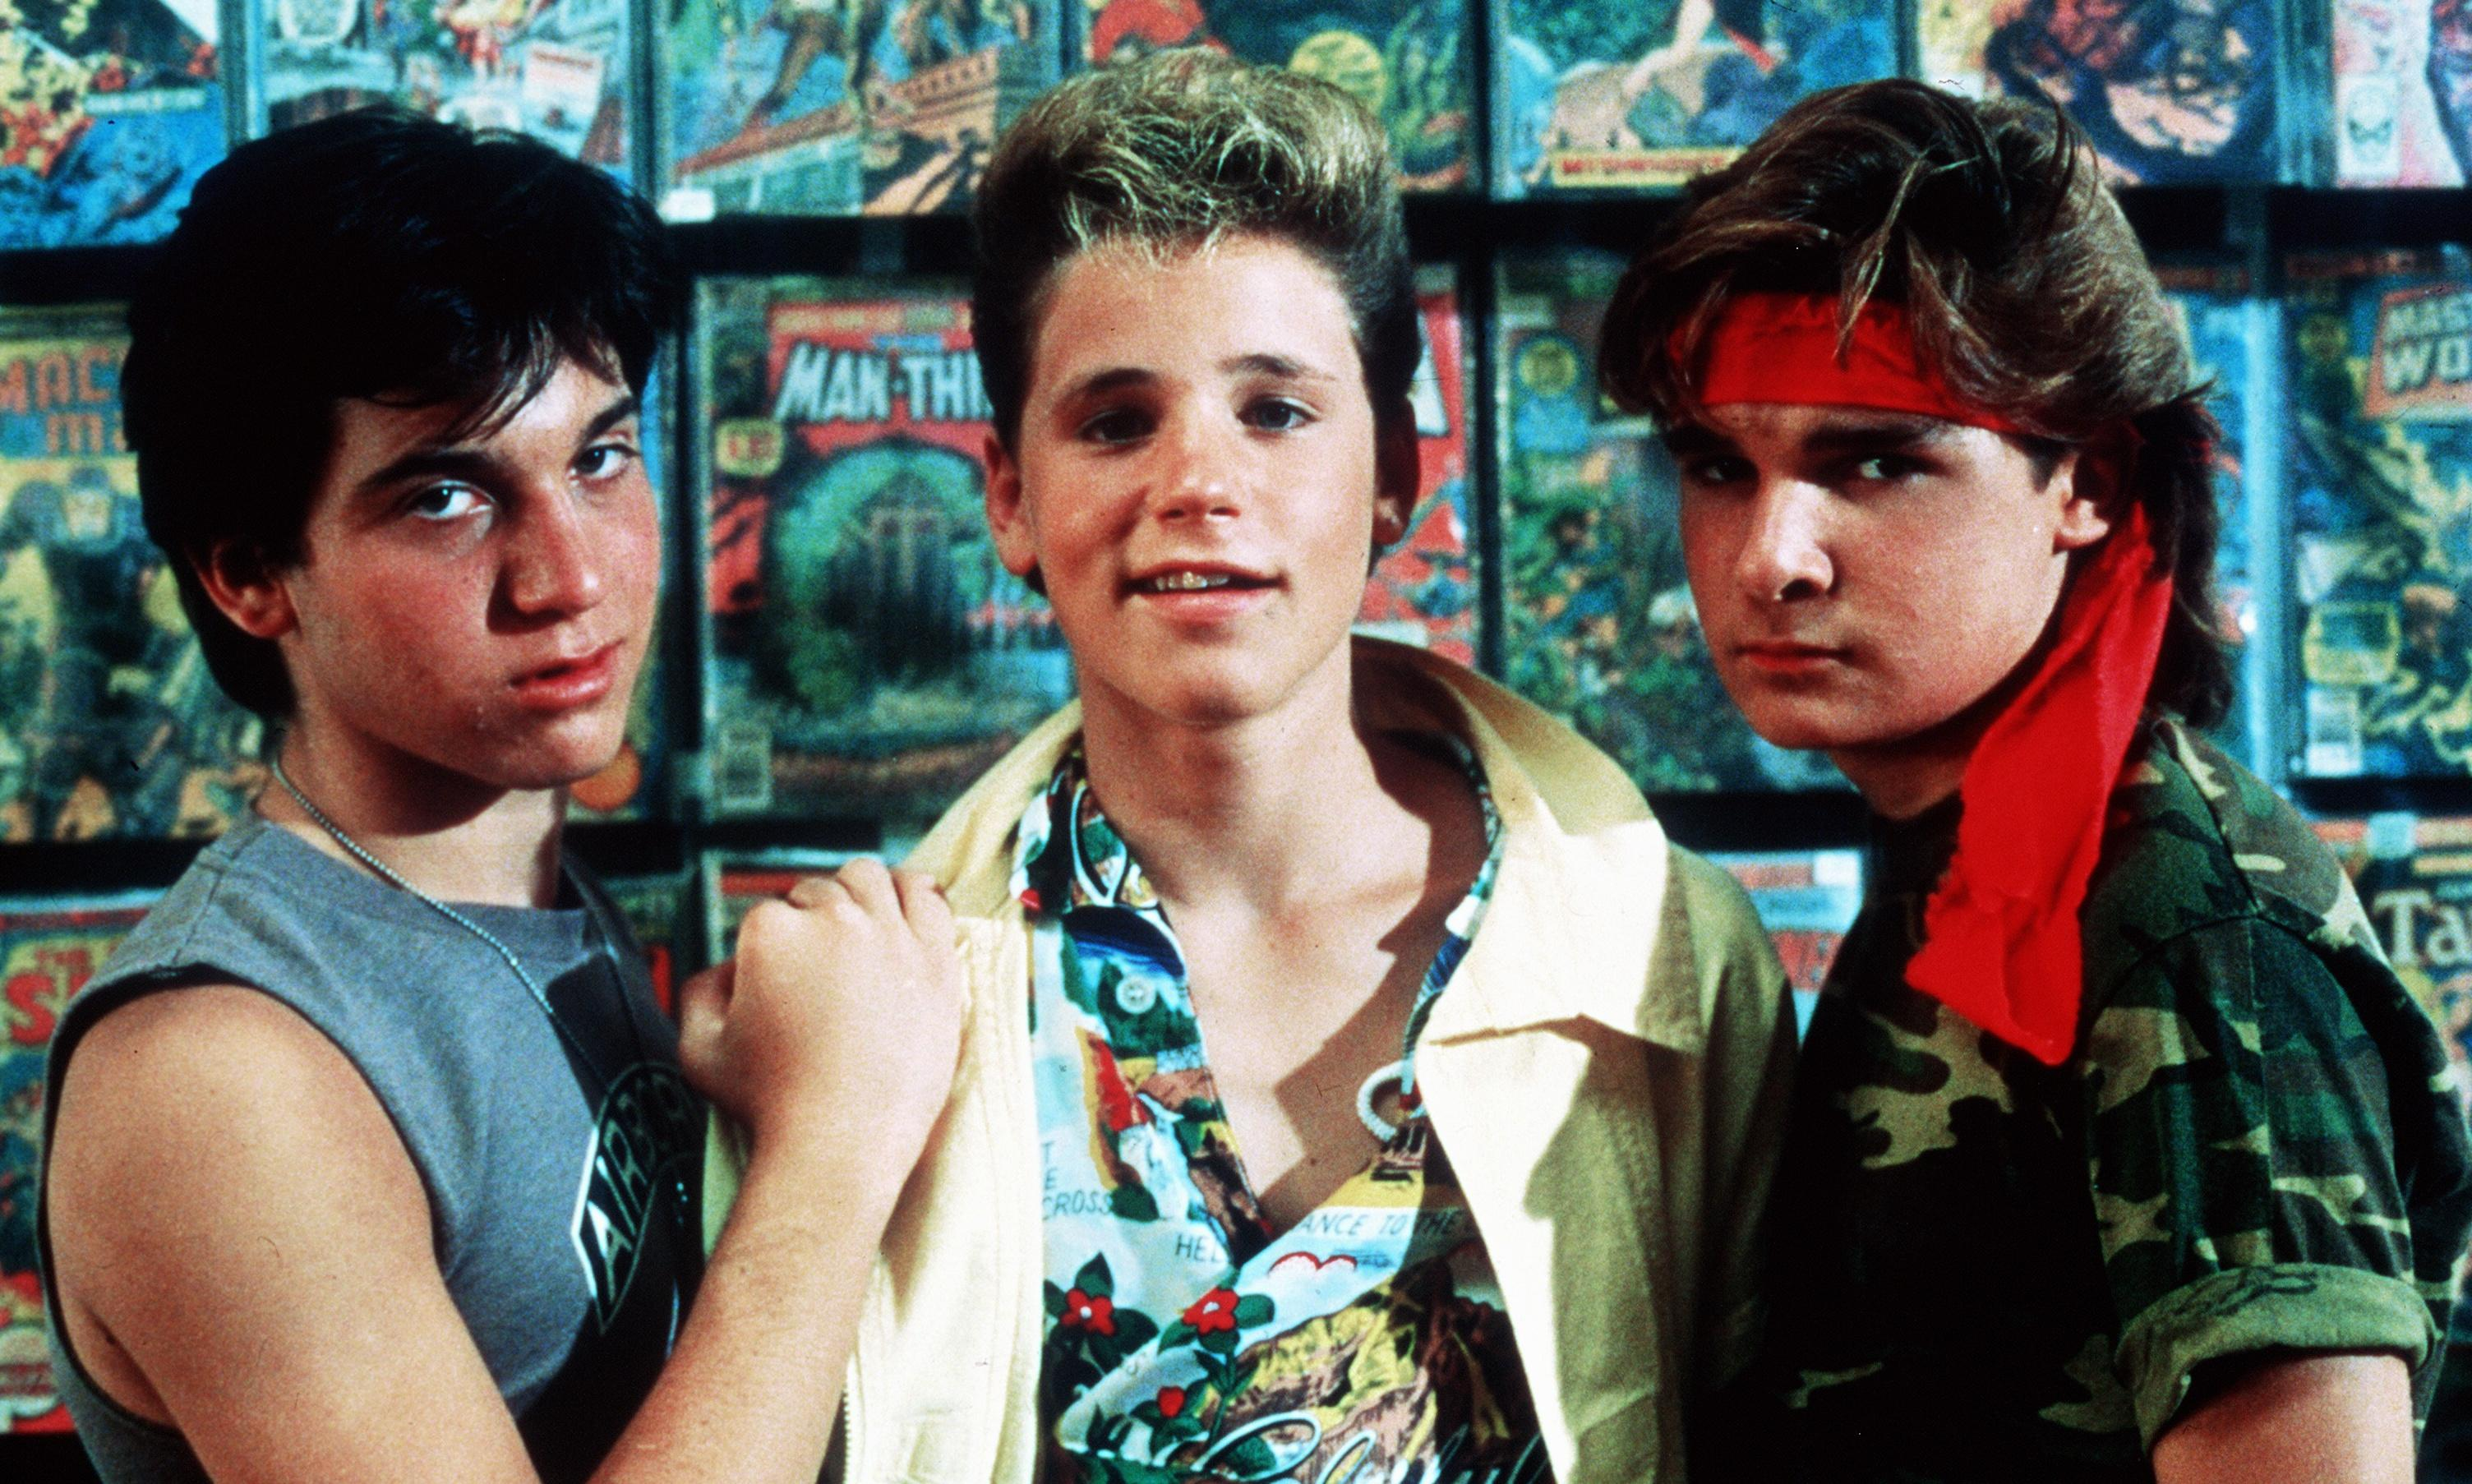 The Lost Boys review – a bloody, ingenious reflection on youth